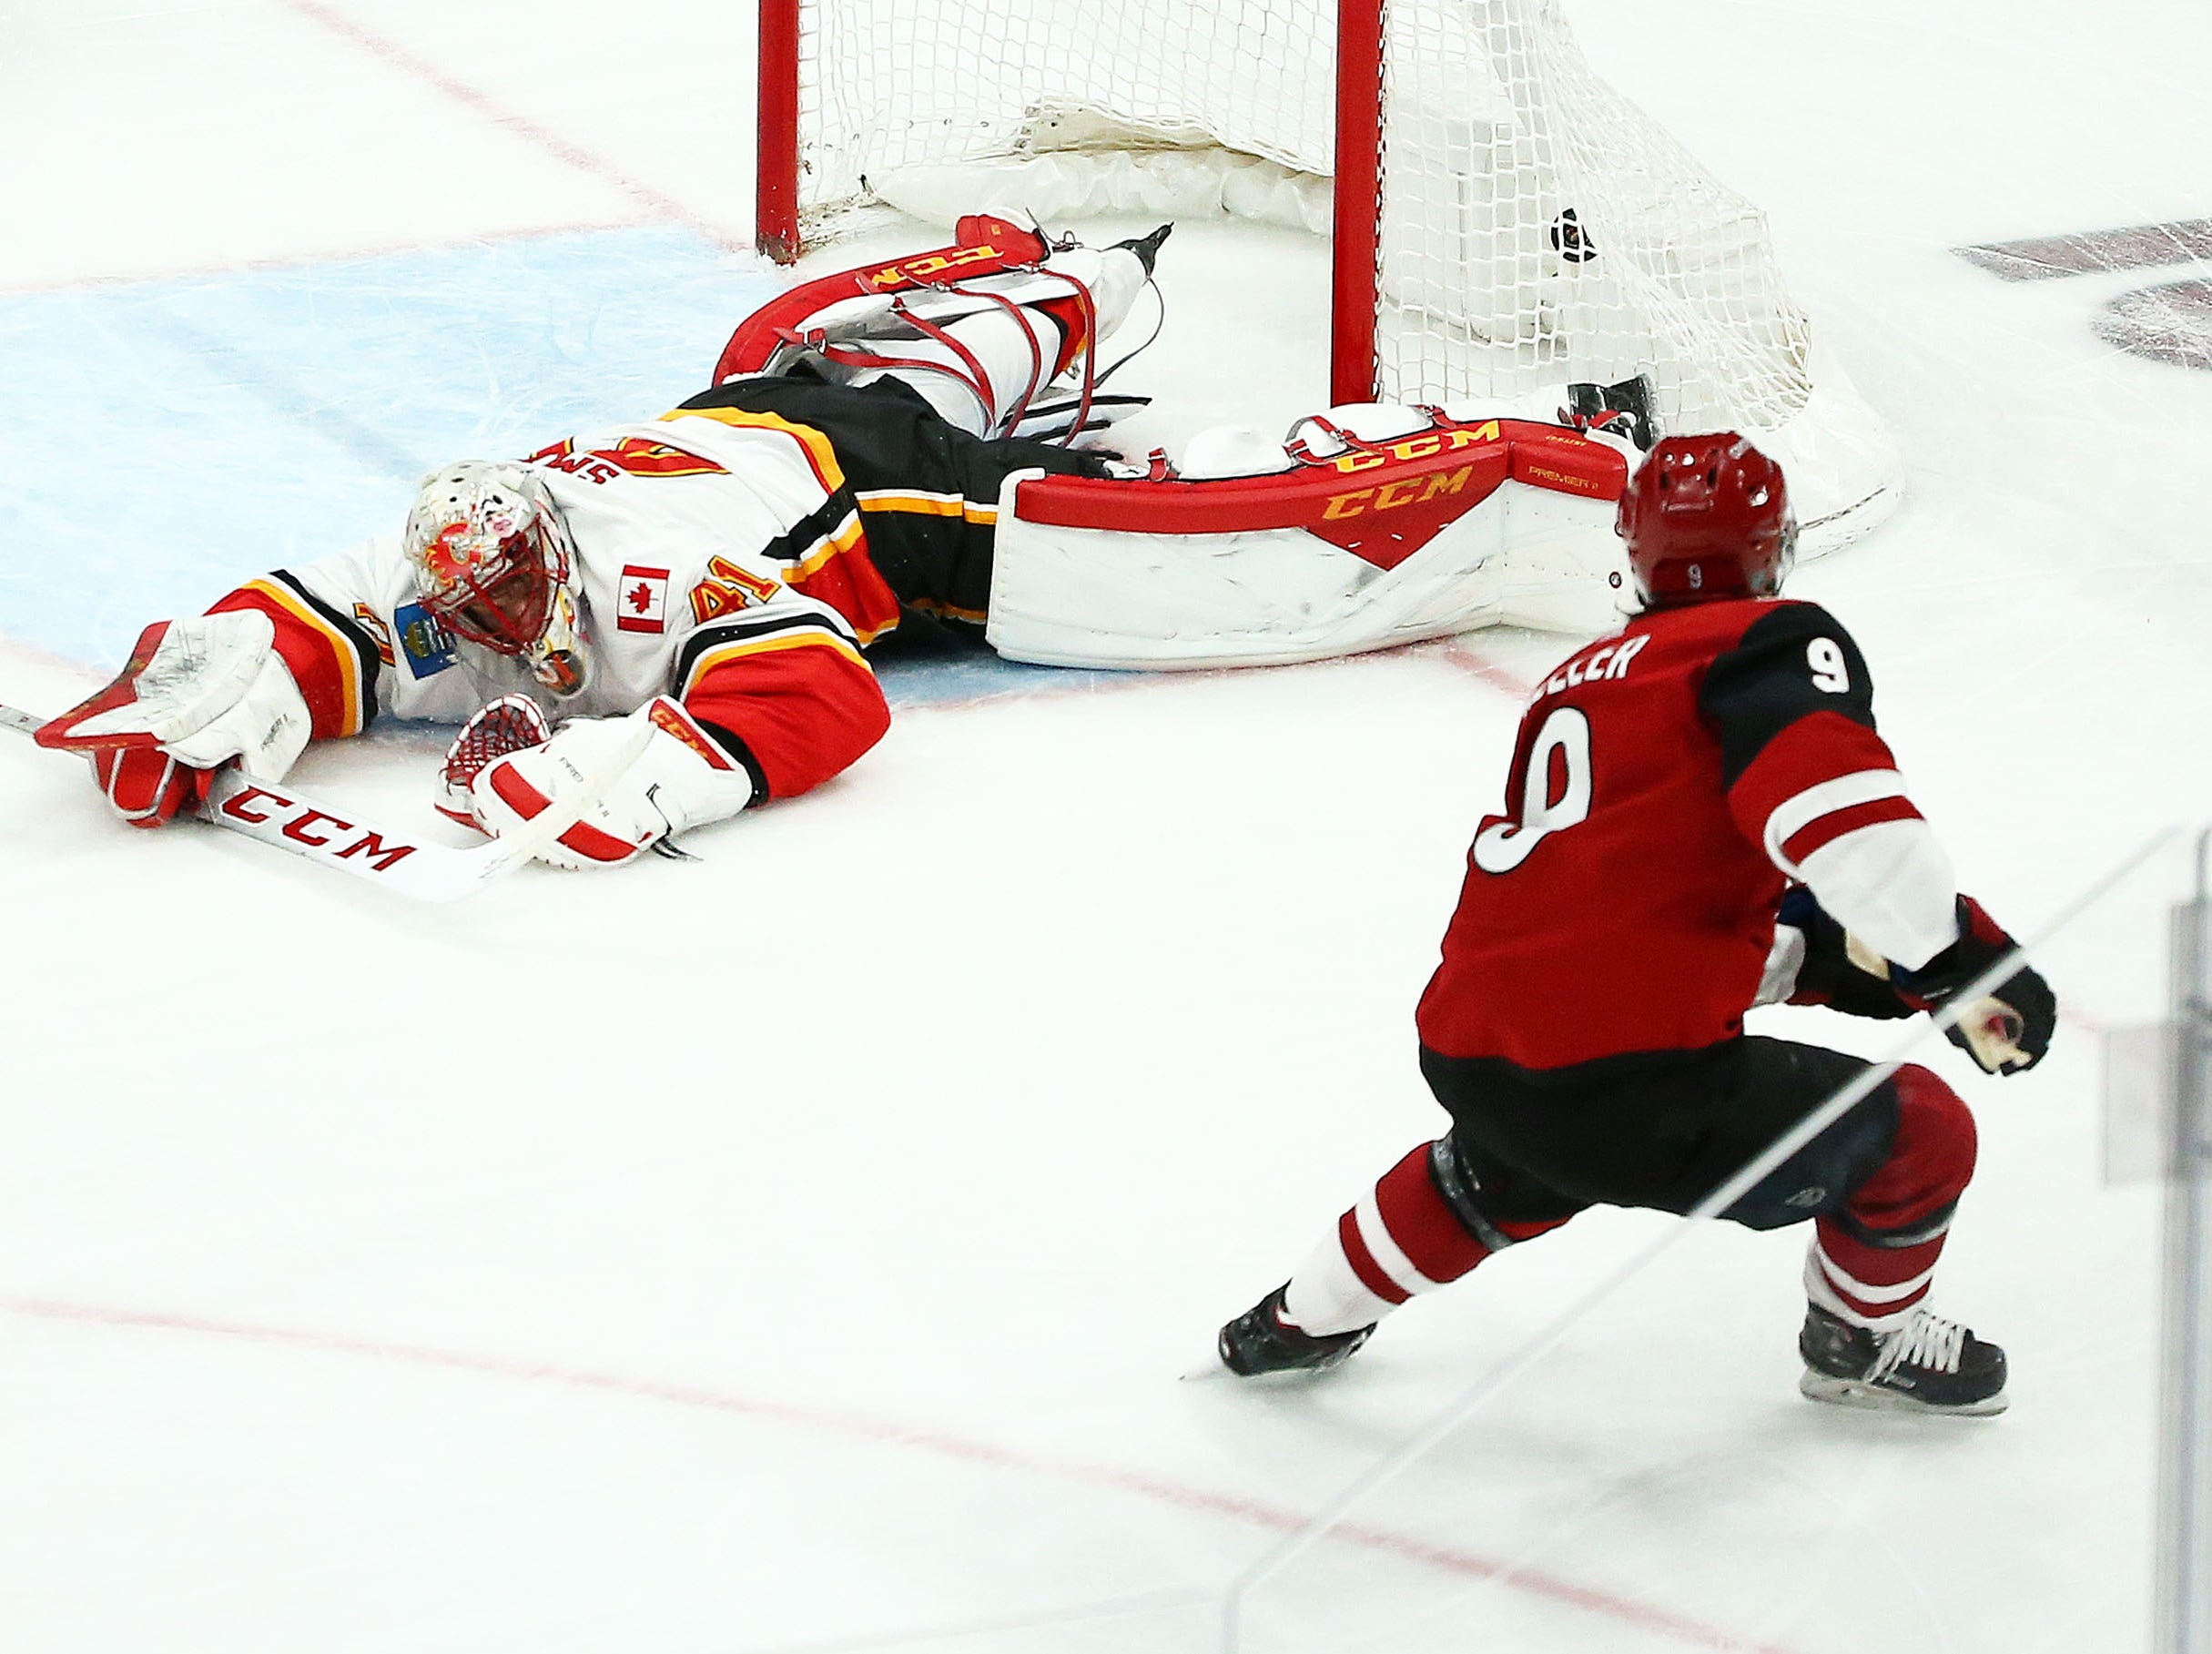 Arizona Coyotes center Clayton Keller (9) scores a goal past Calgary Flames goaltender Mike Smith (41) in the first period on Mar. 7, 2019, at Gila River Arena in Glendale, Ariz.